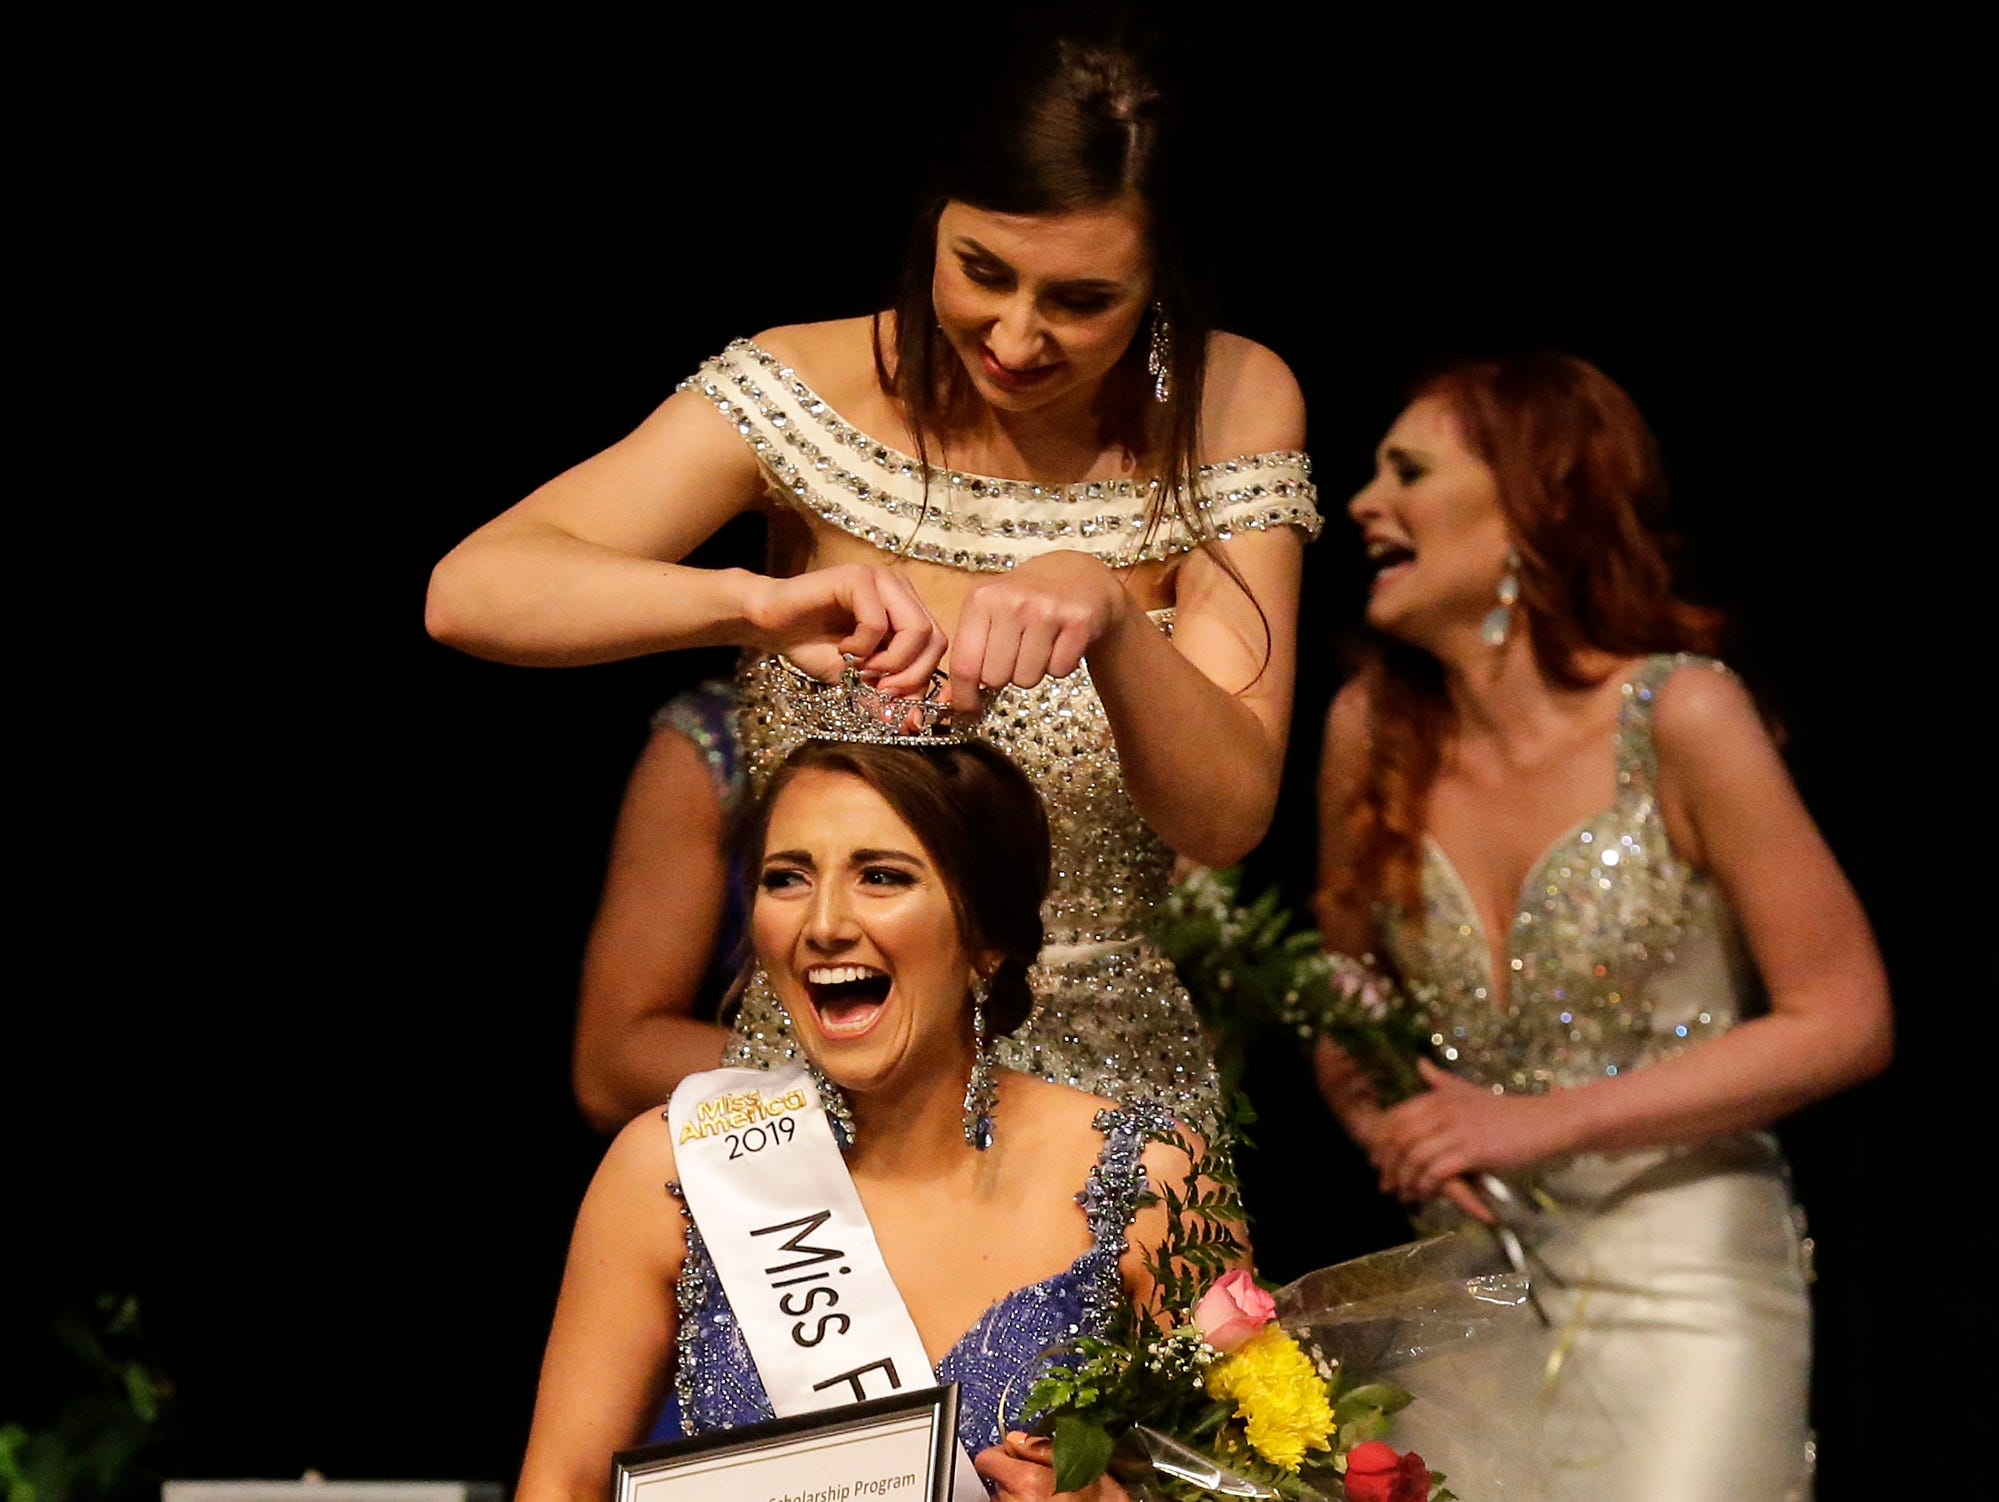 Amanda McClelland is crowned Miss Fond du Lac   2019 by 2018's Miss Fond du Lac Rachelle Wuest during the Miss Fond du Lac, Miss Wisconsin Central and Miss Fond du Lac's Outstanding Teen 2019 scholarship competitions Saturday, March 9, 2019 at the Goodrich Little Theater in Fond du Lac, Wis. Doug Raflik/USA TODAY NETWORK-Wisconsin